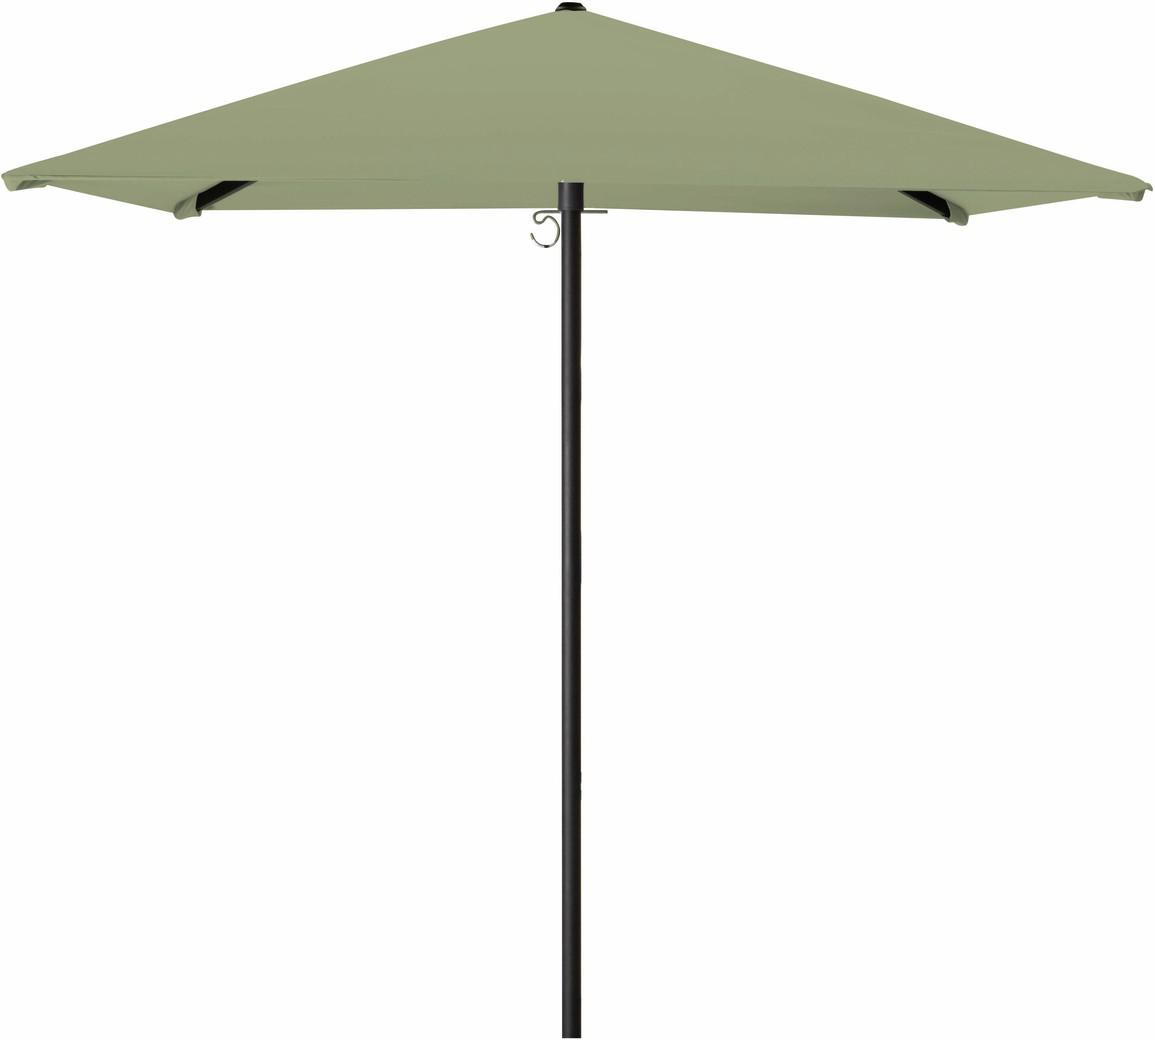 Umbrella small - central pole black - 180x180 AW forest